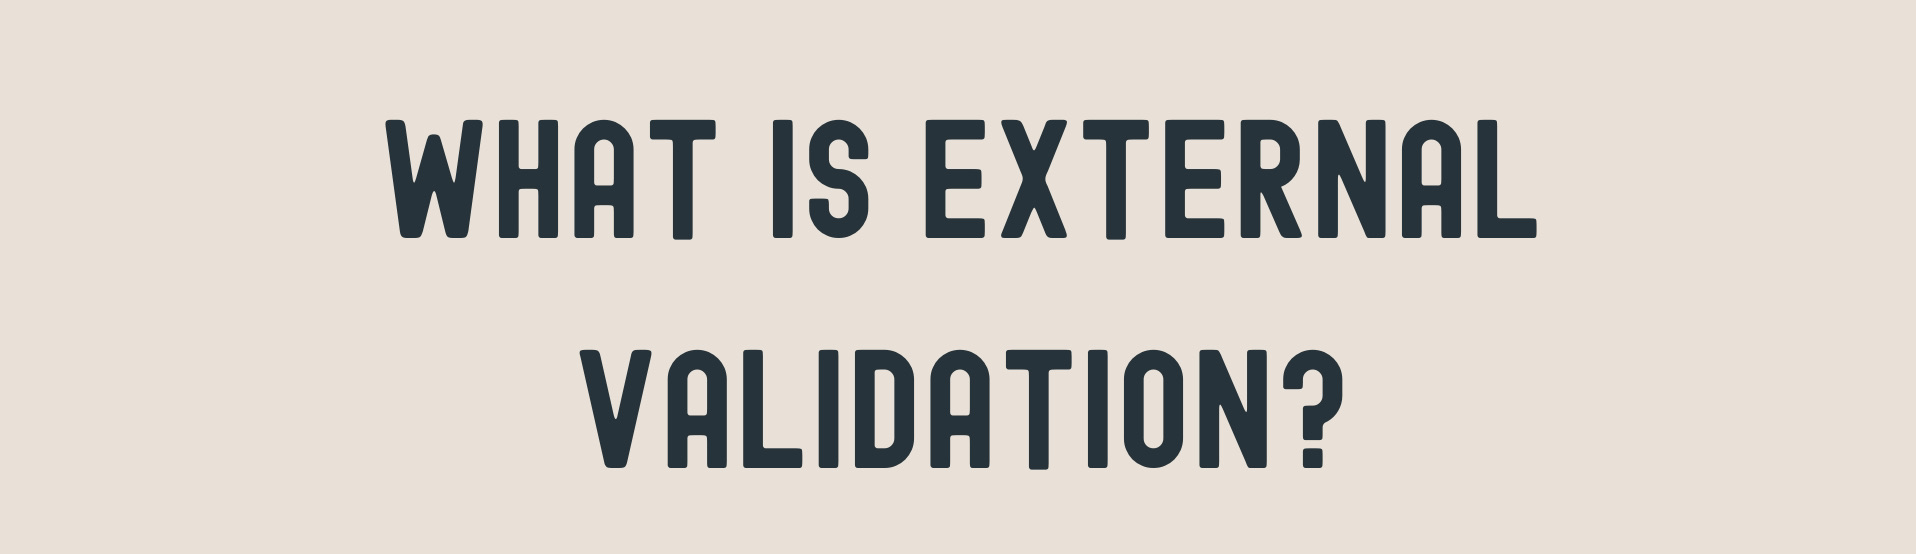 """Navy Blue Text stating """"What is External Validation?"""" on Beige background"""